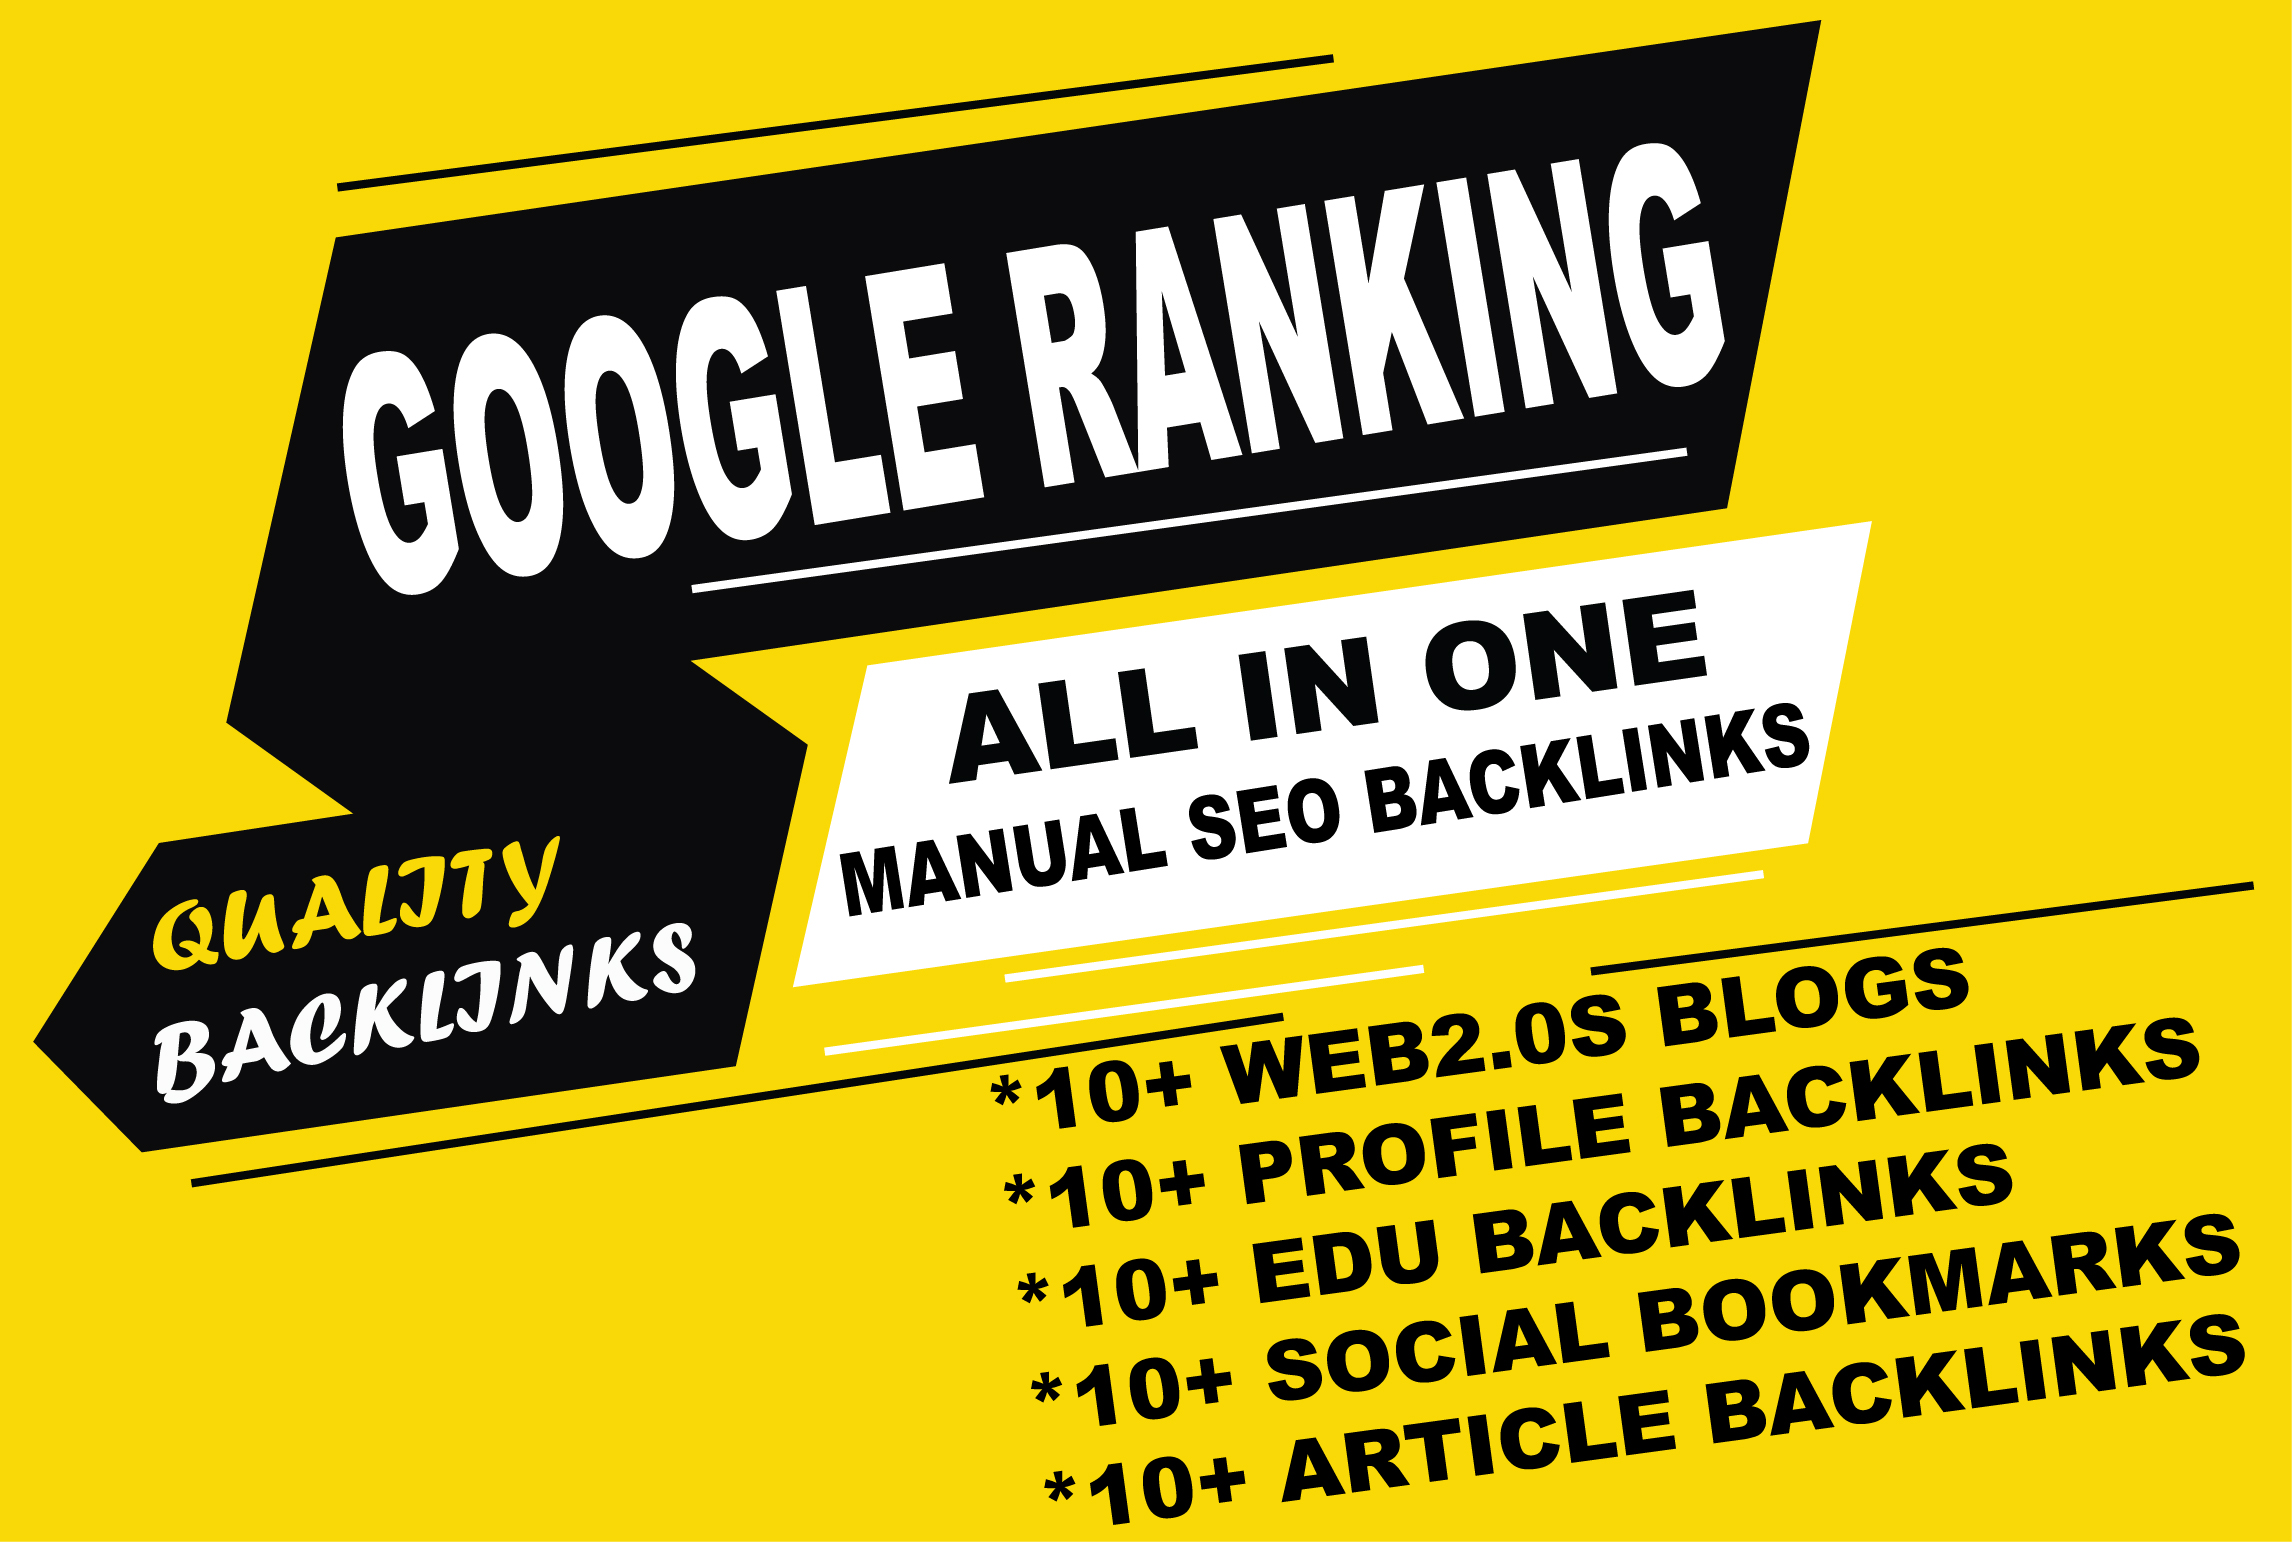 High Authority Manual Backlinks Tier 2 SEO link building